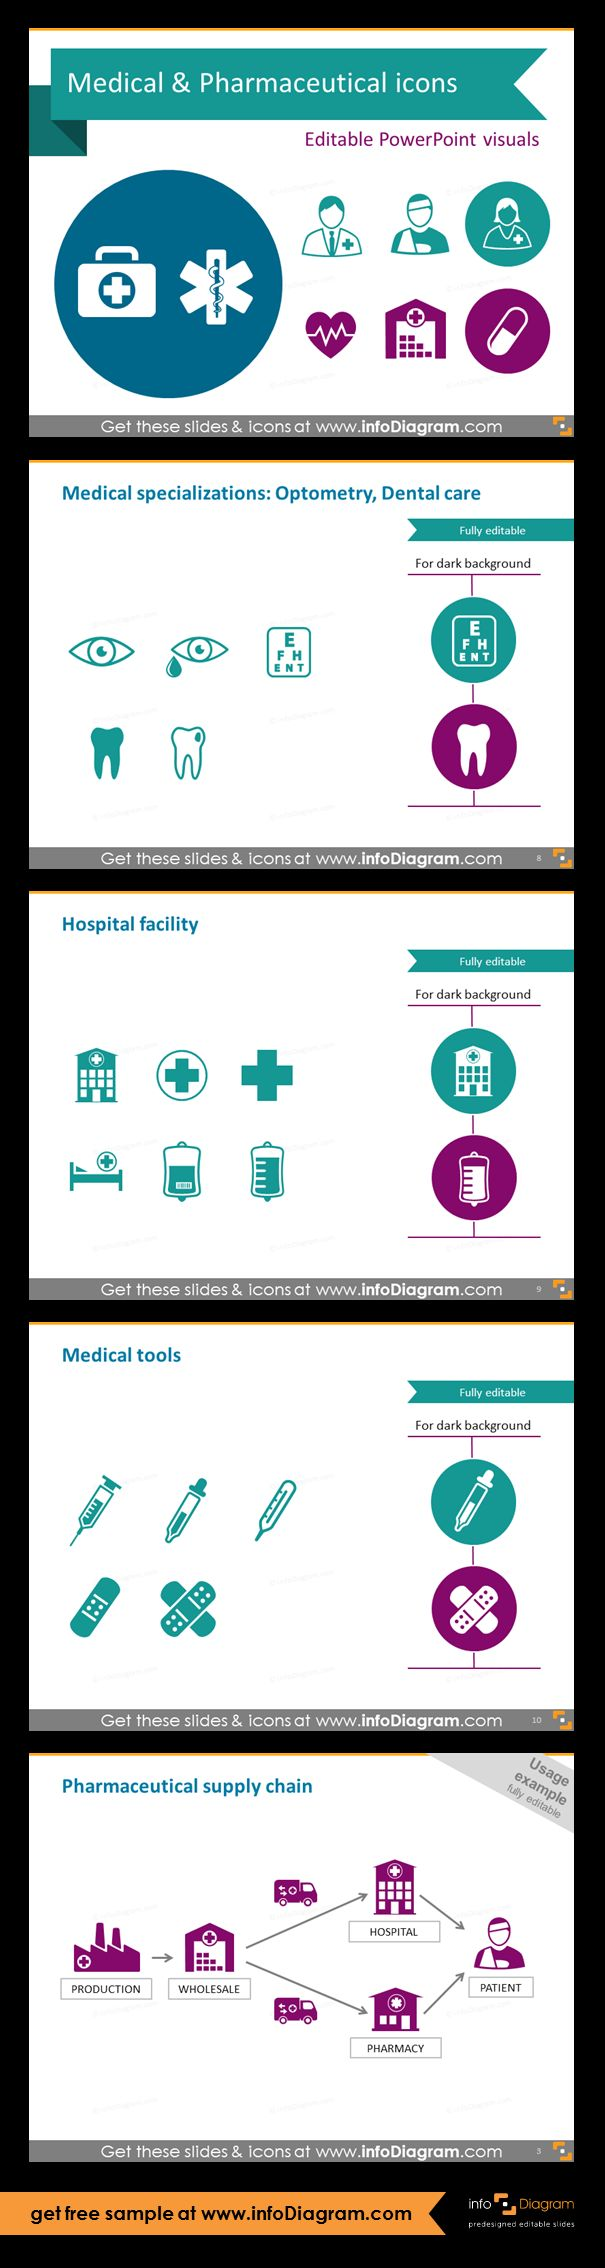 Medical and Pharmaceutical icons: medical specializations, hospital facility and medical tools. Medical supply chain infographics.